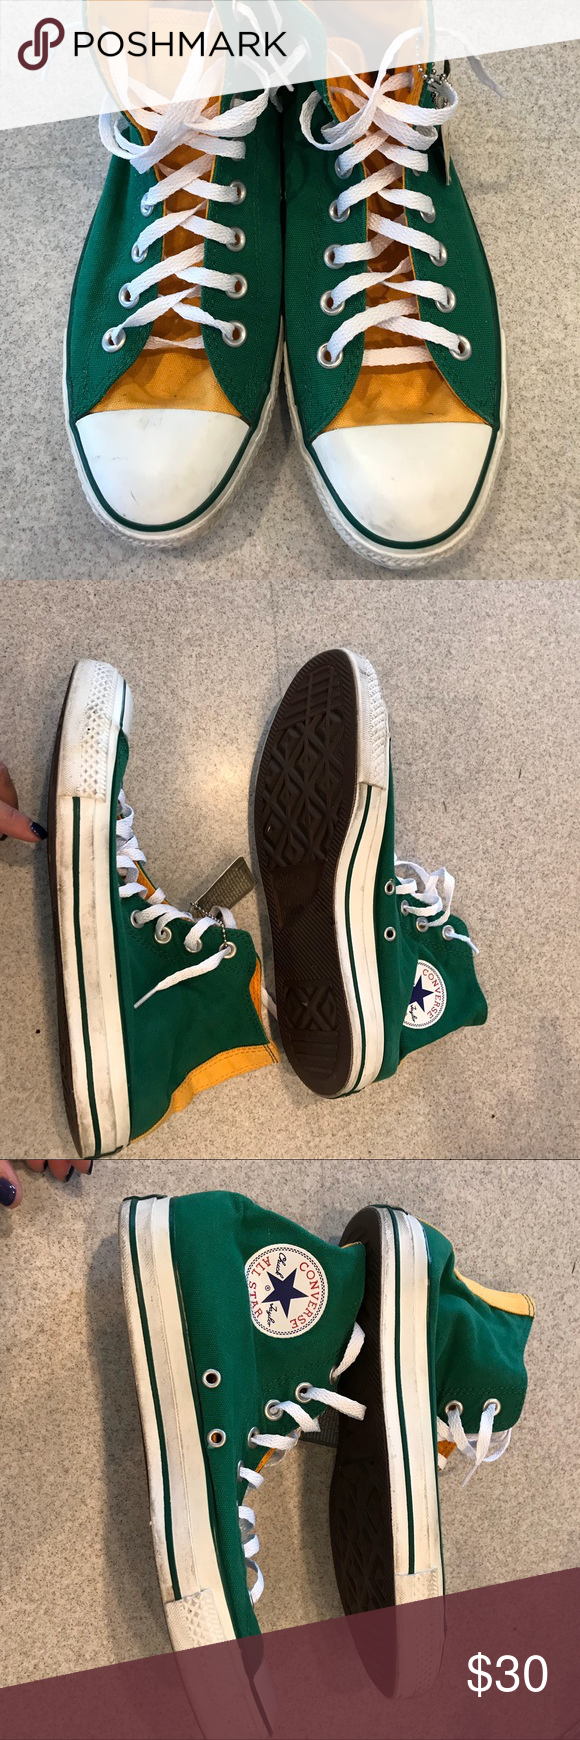 Converse high tops green and gold